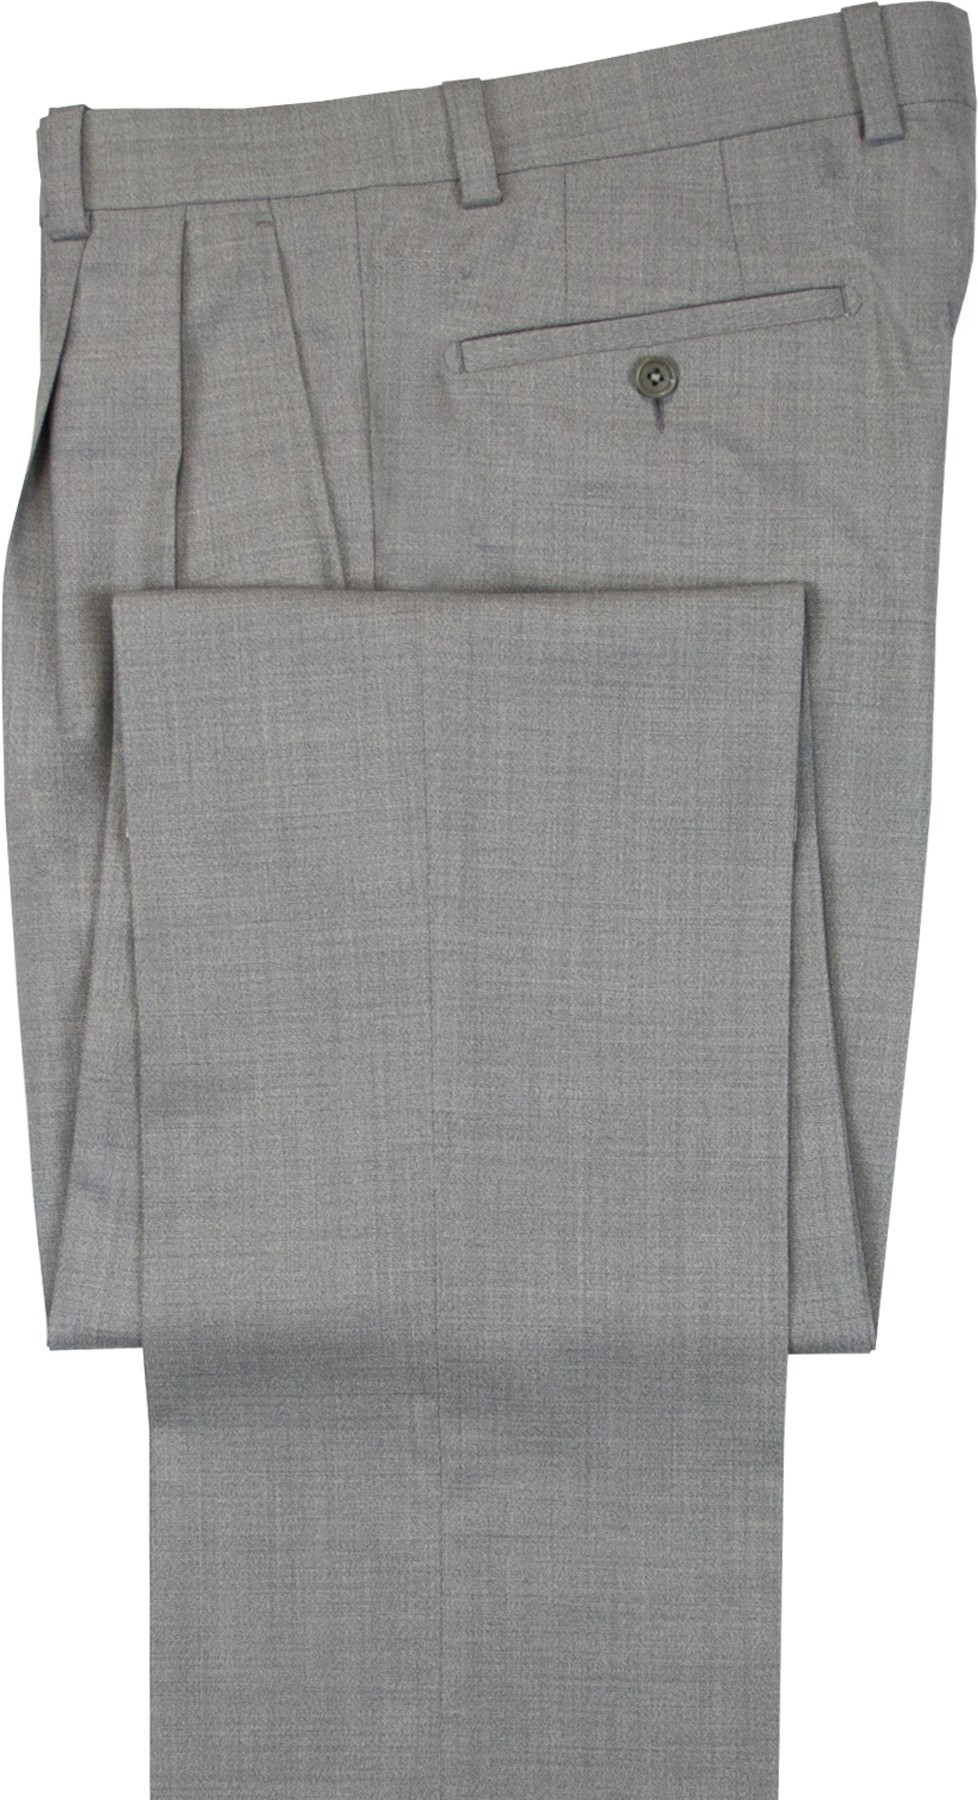 "Aristo 18 ""Aberdeen"" Pleated Trouser - Performance Wool Solids"